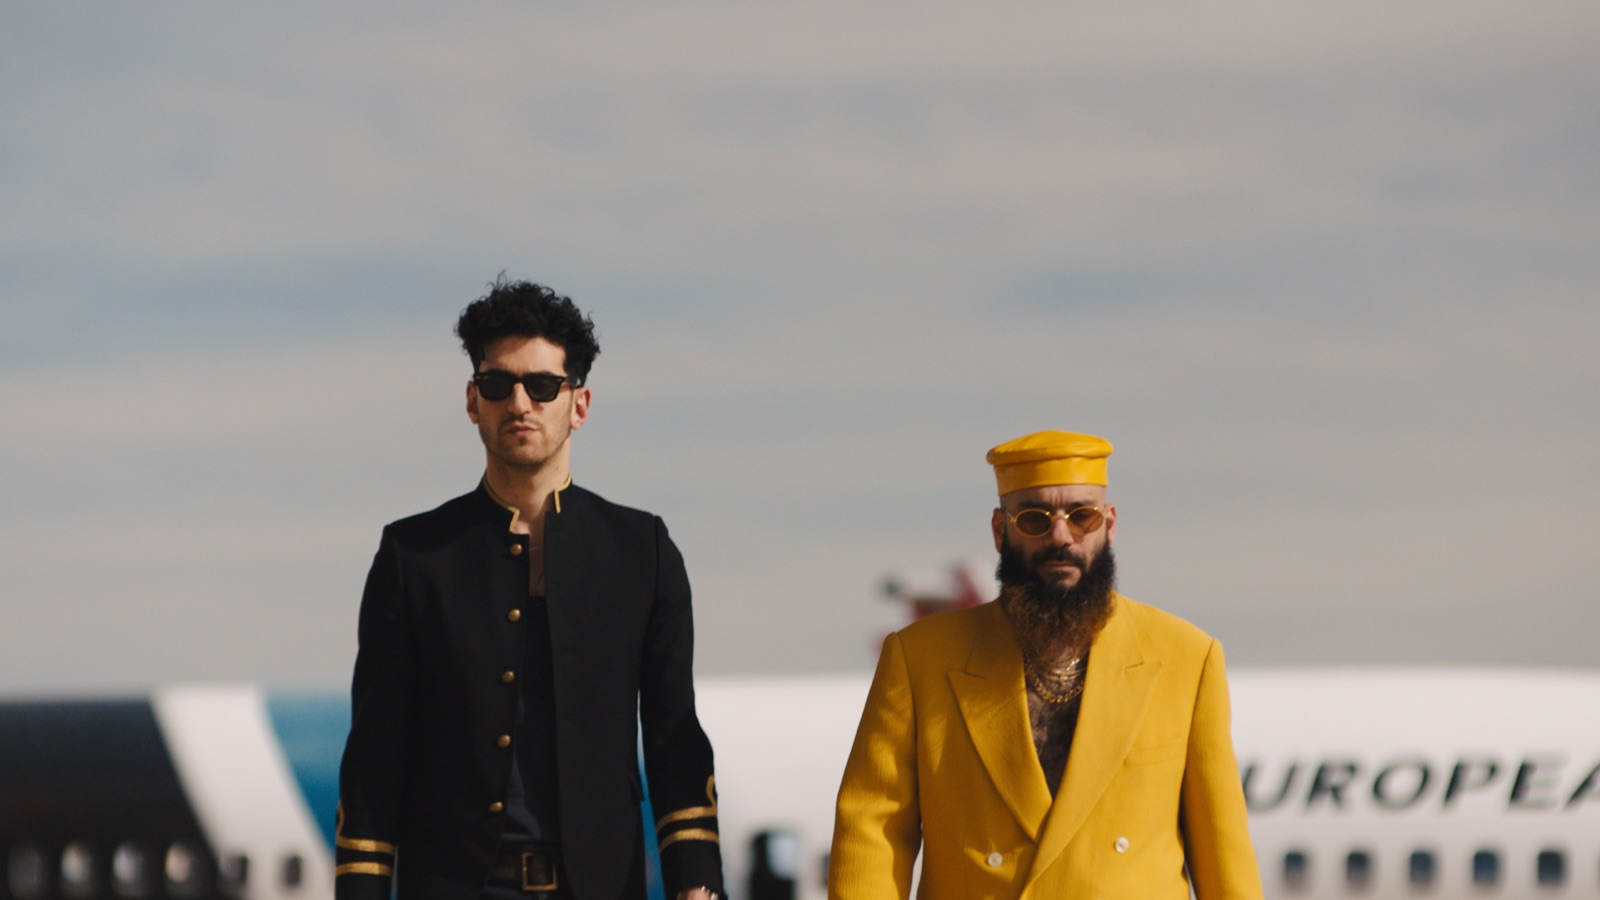 CHROMEO COLOR for stills.01_01_20_22.Still015.jpg.jpeg